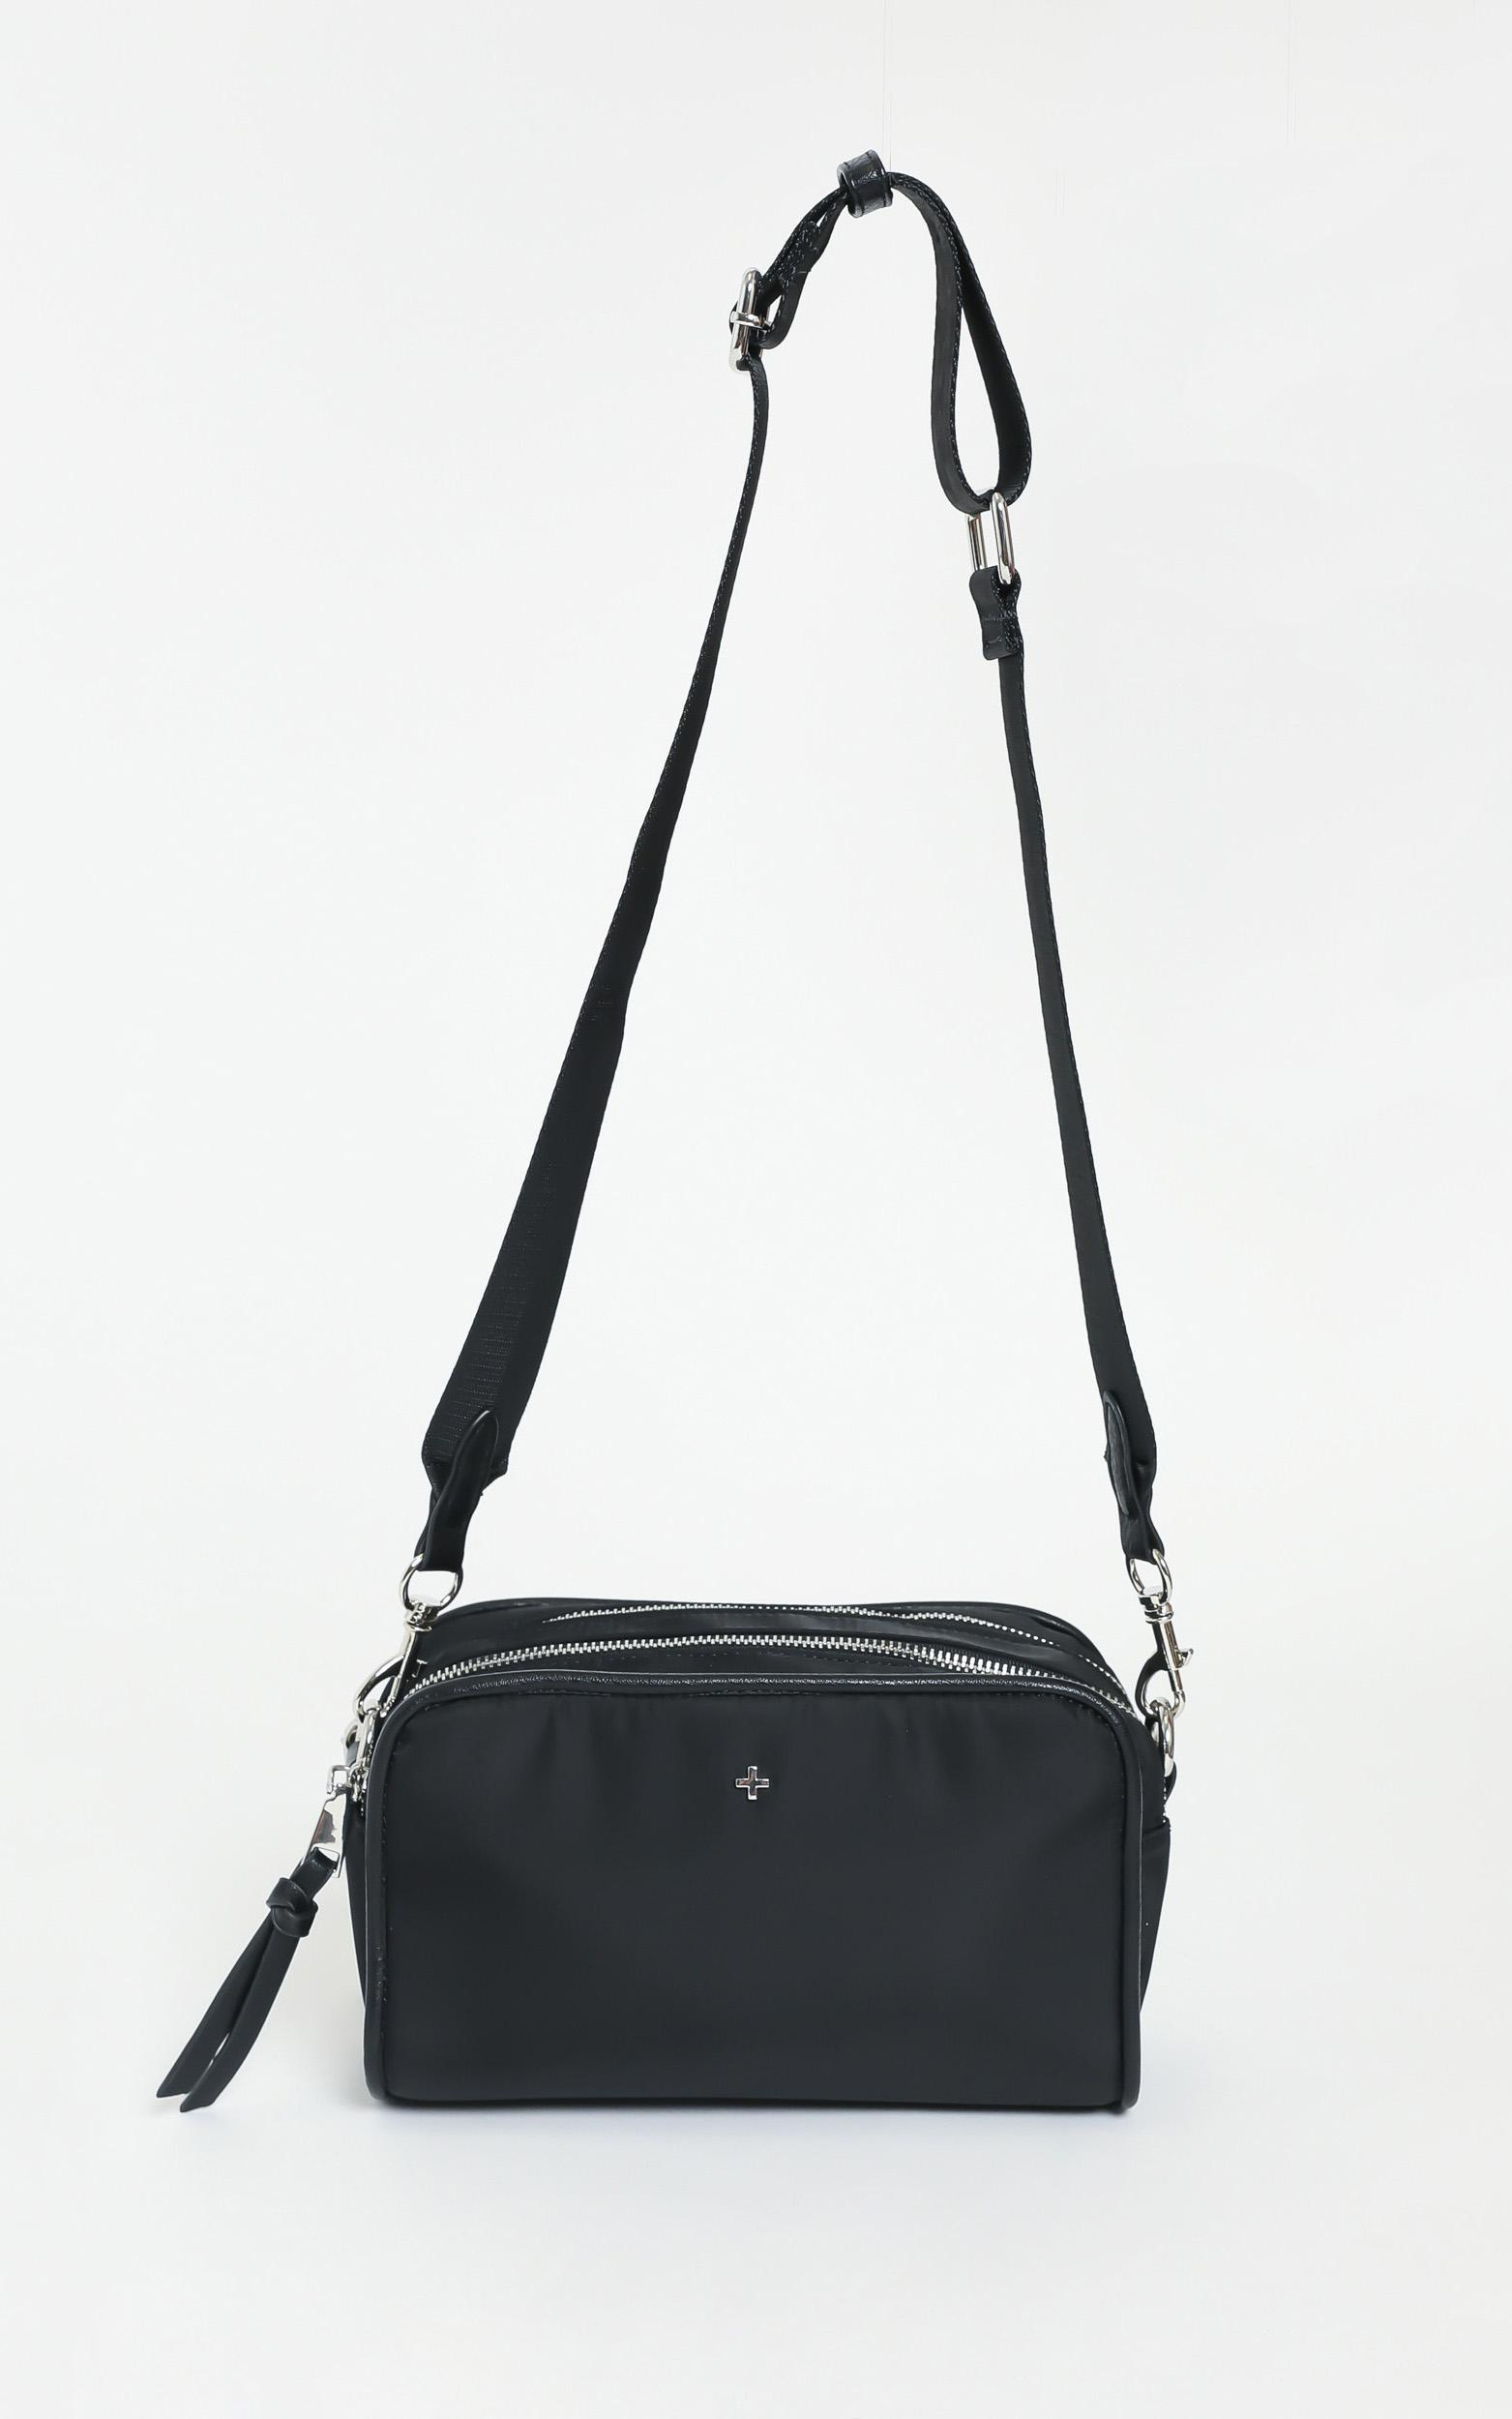 Peta and Jain - Maia Bag in Black, , hi-res image number null